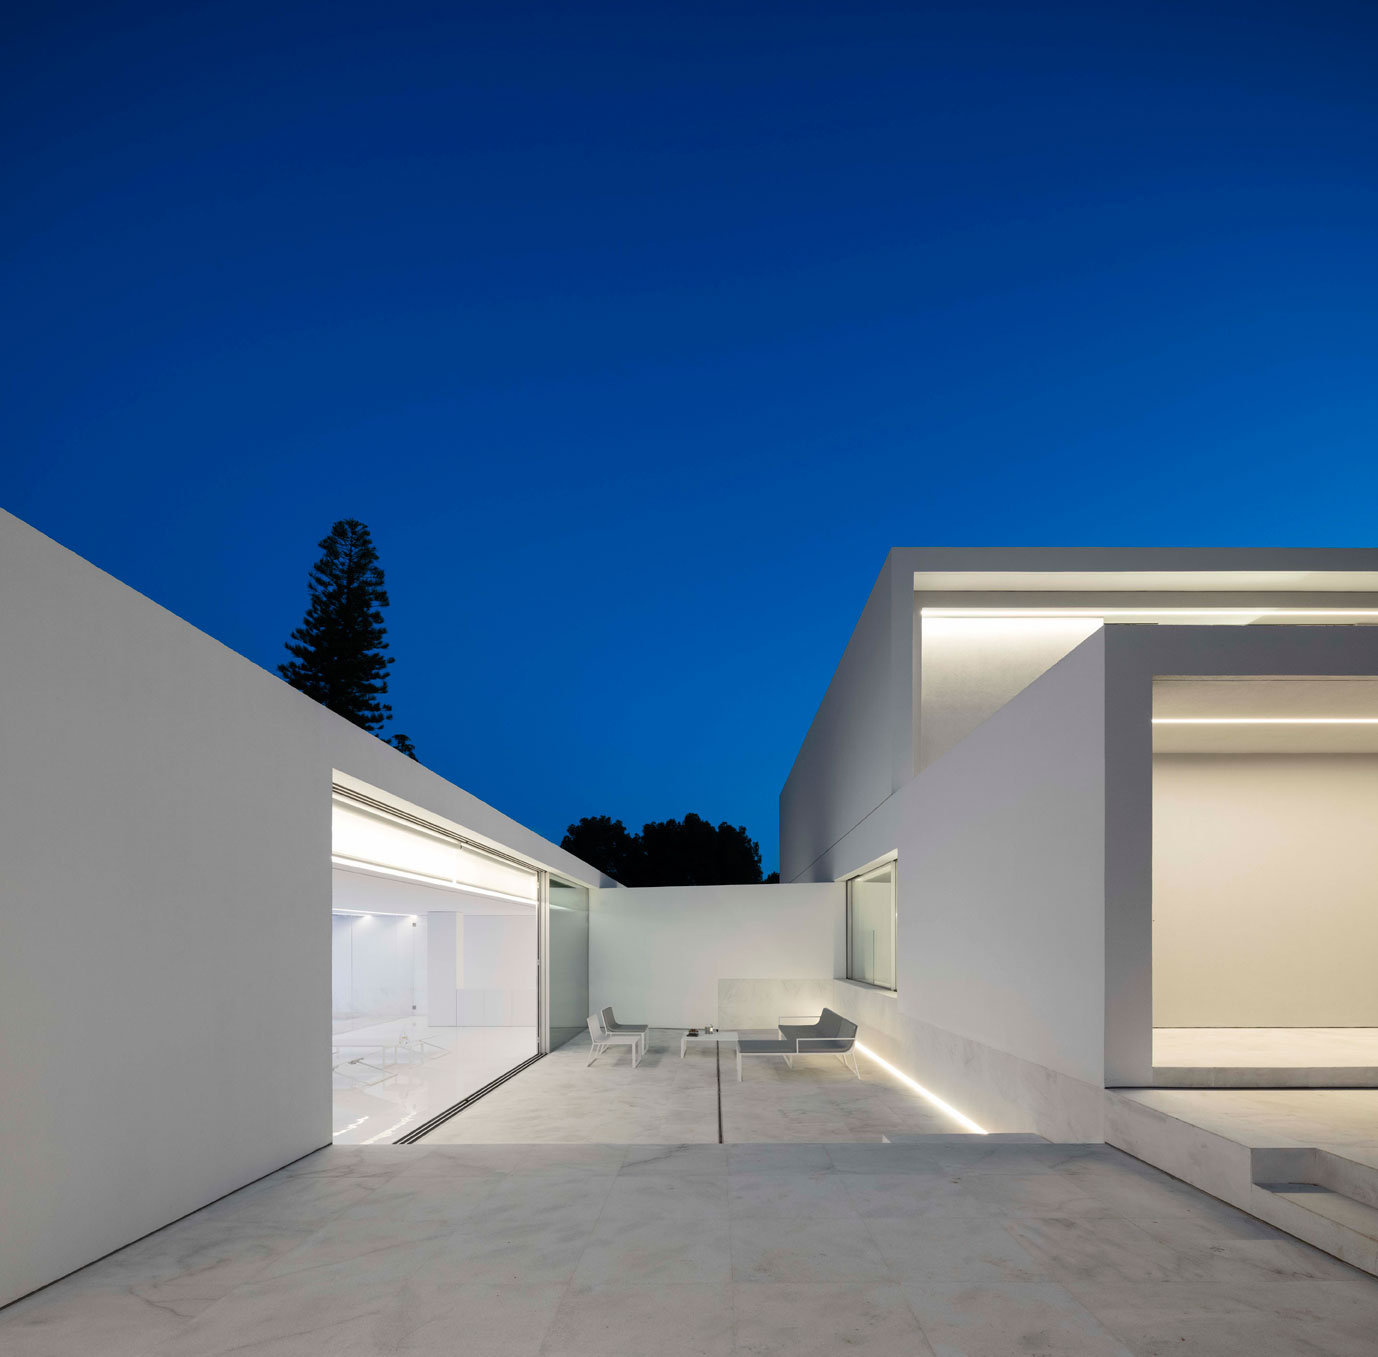 dissenycv-es-fran-silvestre-arquitectos_-house-betwwen-the-pine-forest_-5